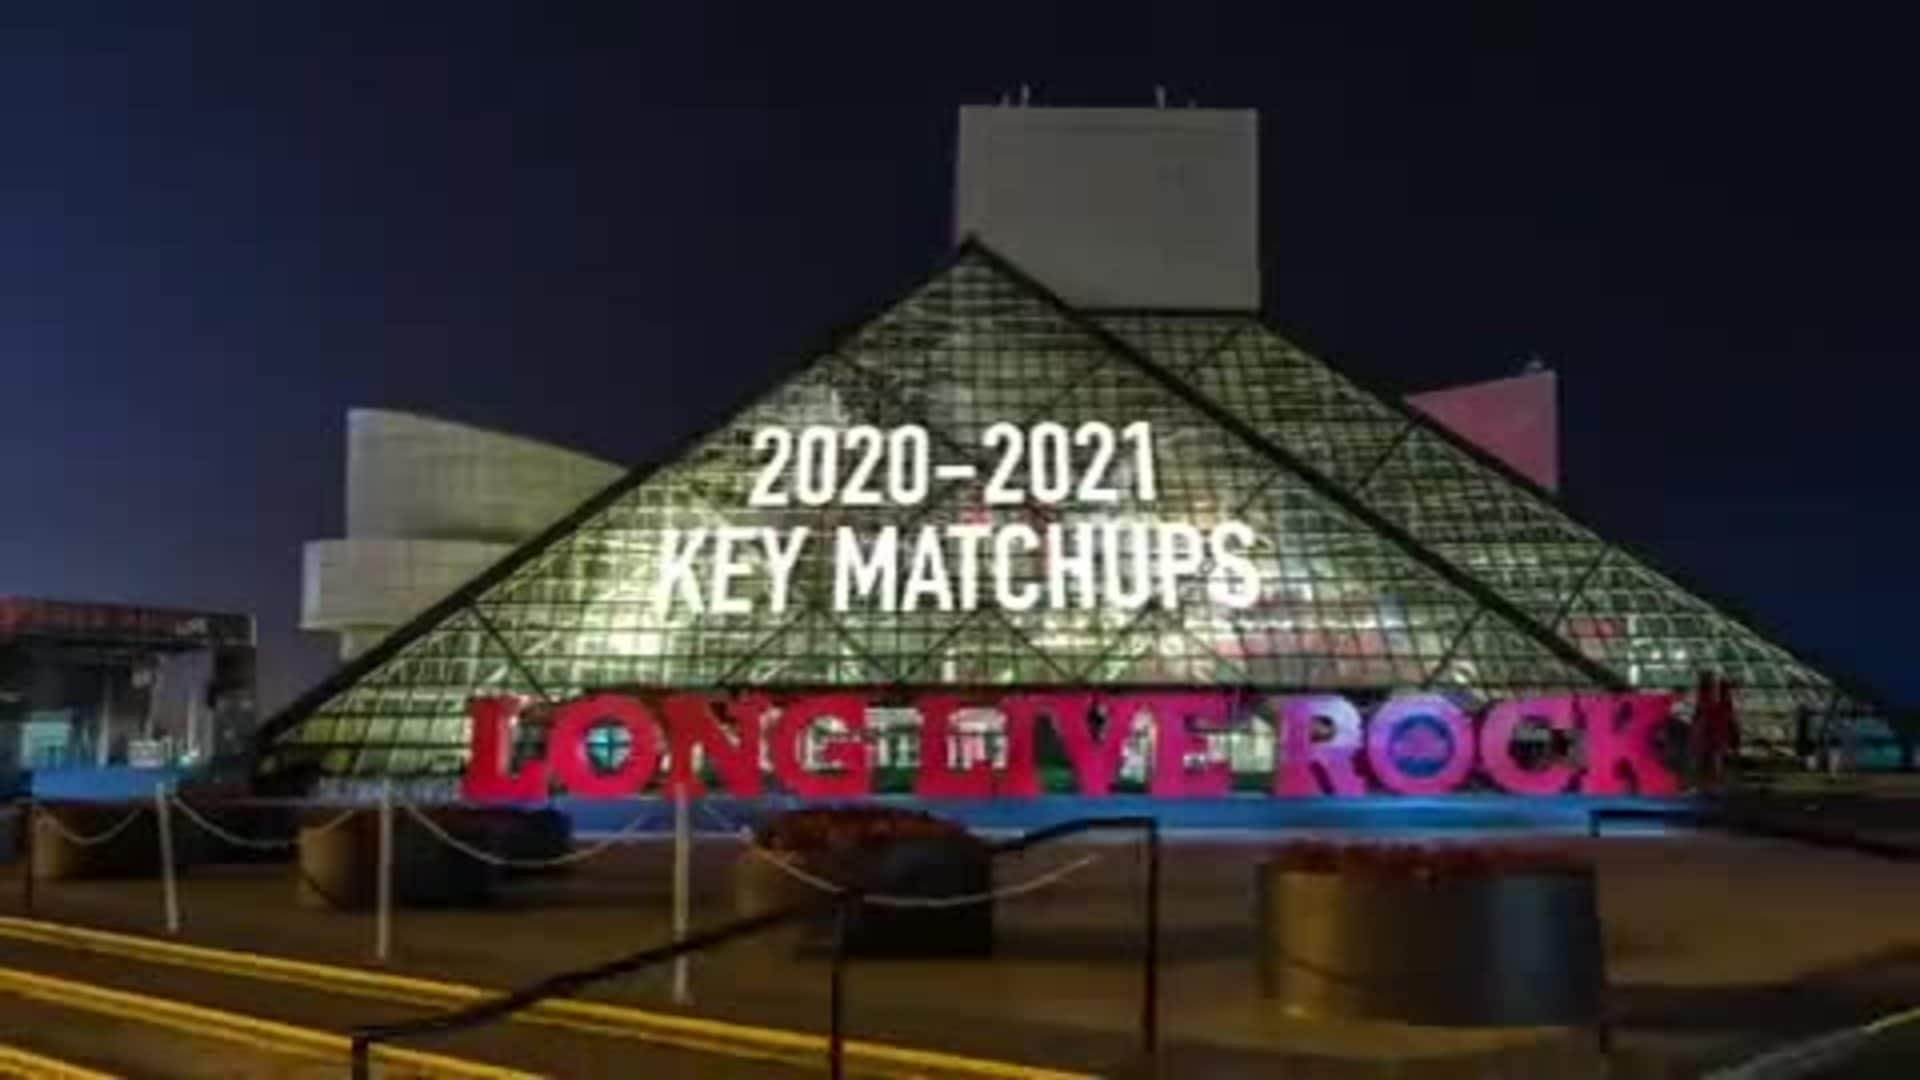 Key Matchups for the Wine & Gold in 2020-21